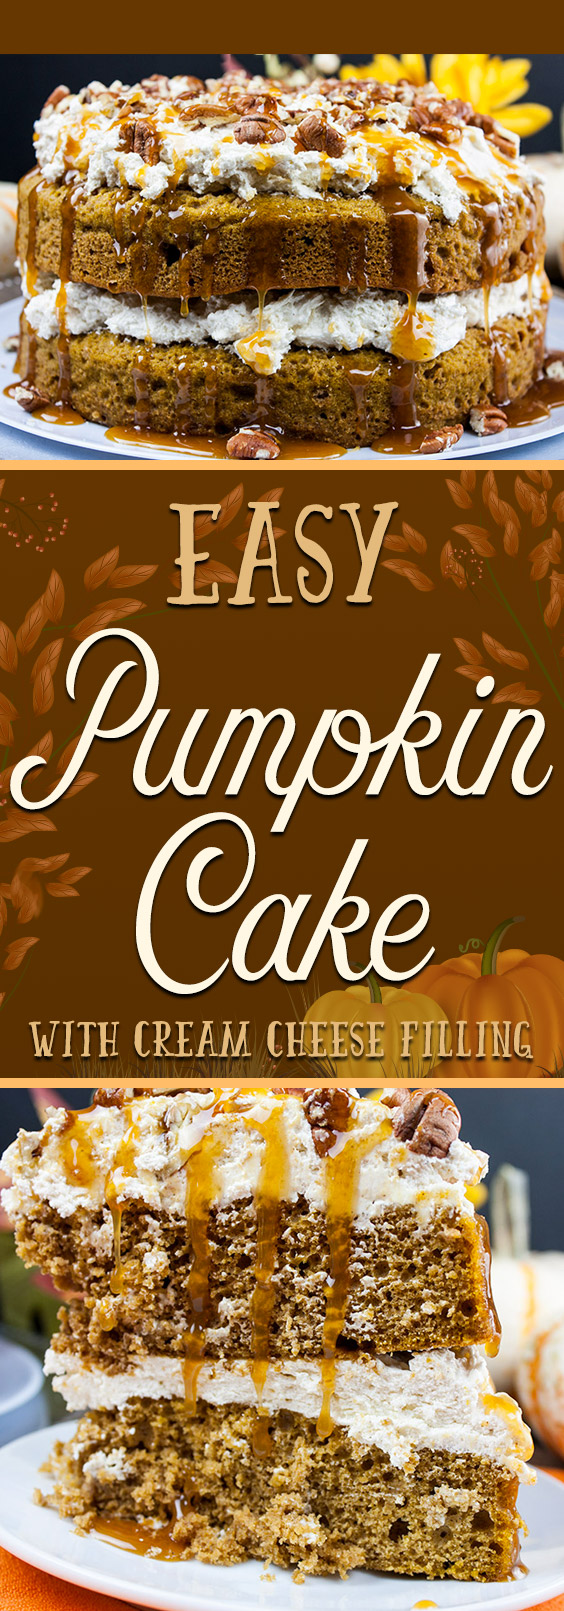 Easy Pumpkin Cake with Cream Cheese Filling - Simple to make using a spice cake mix with a spiced cream cheese and whipped cream filling. A holiday show stopper!